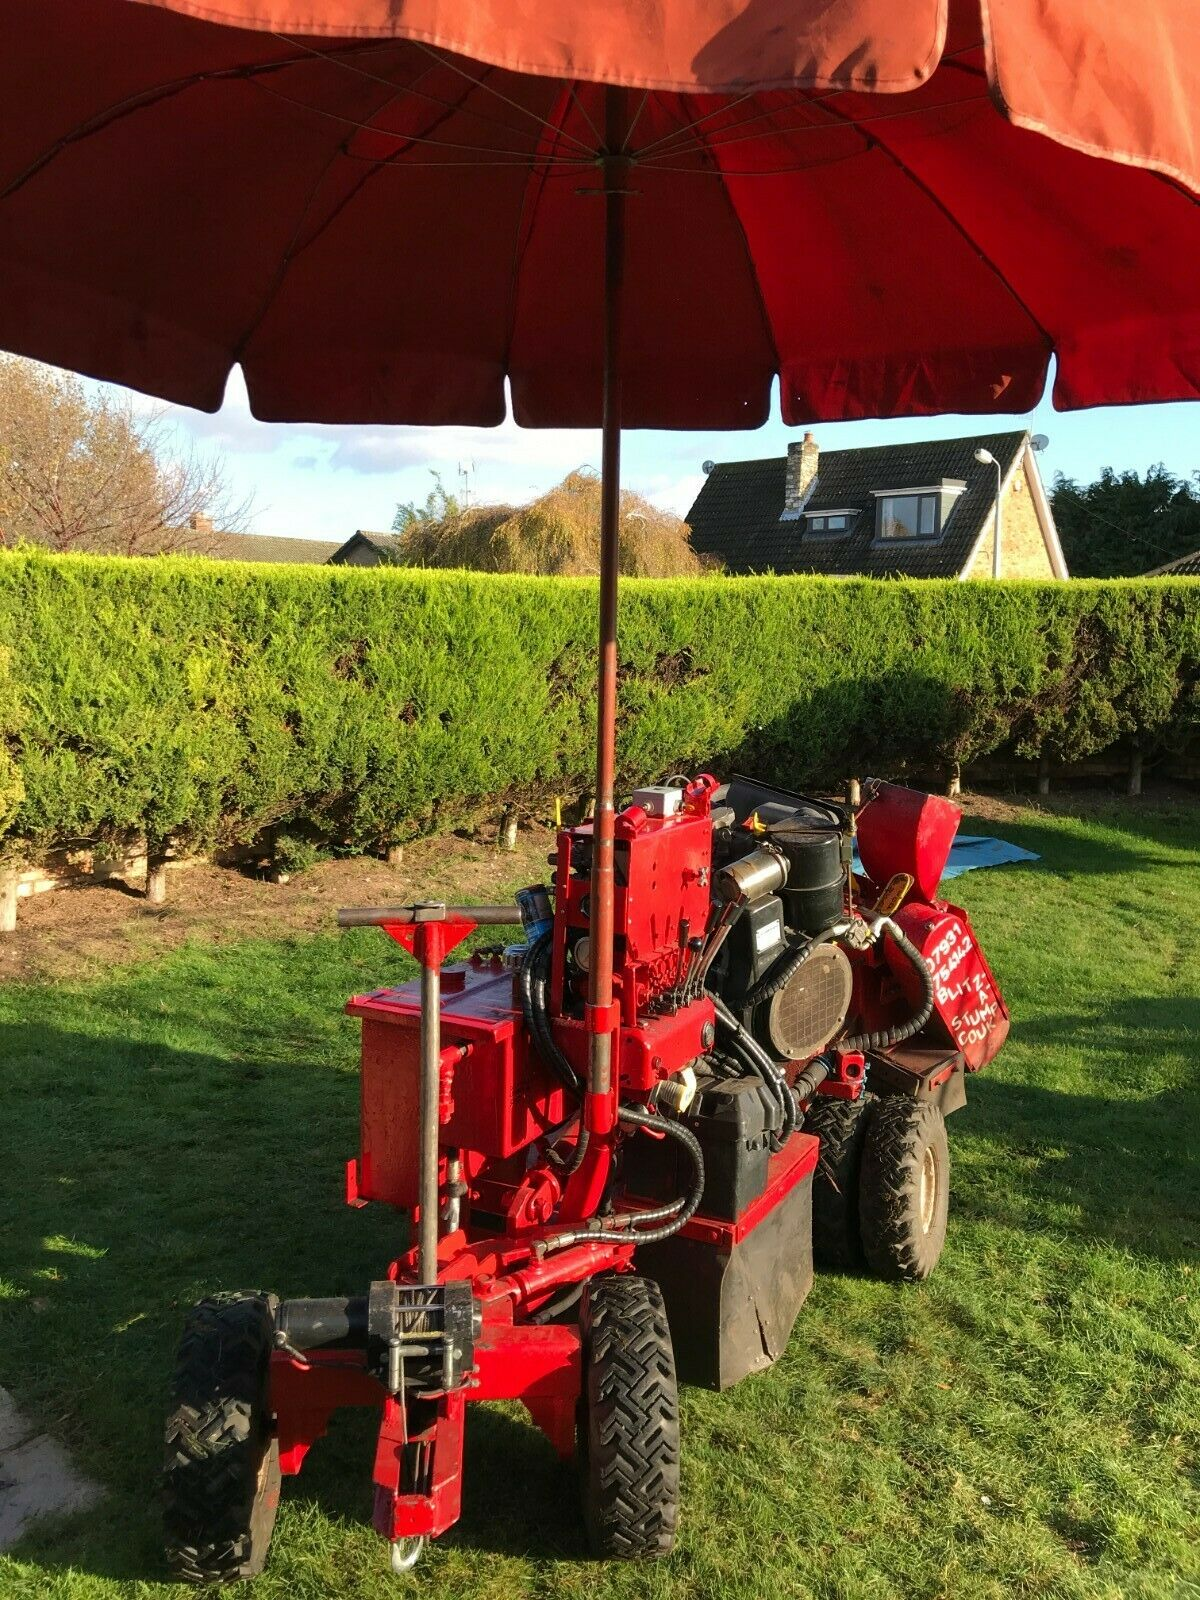 Carlton 2300-4 Stump Grinder Excellent Condition for the year,many added mods